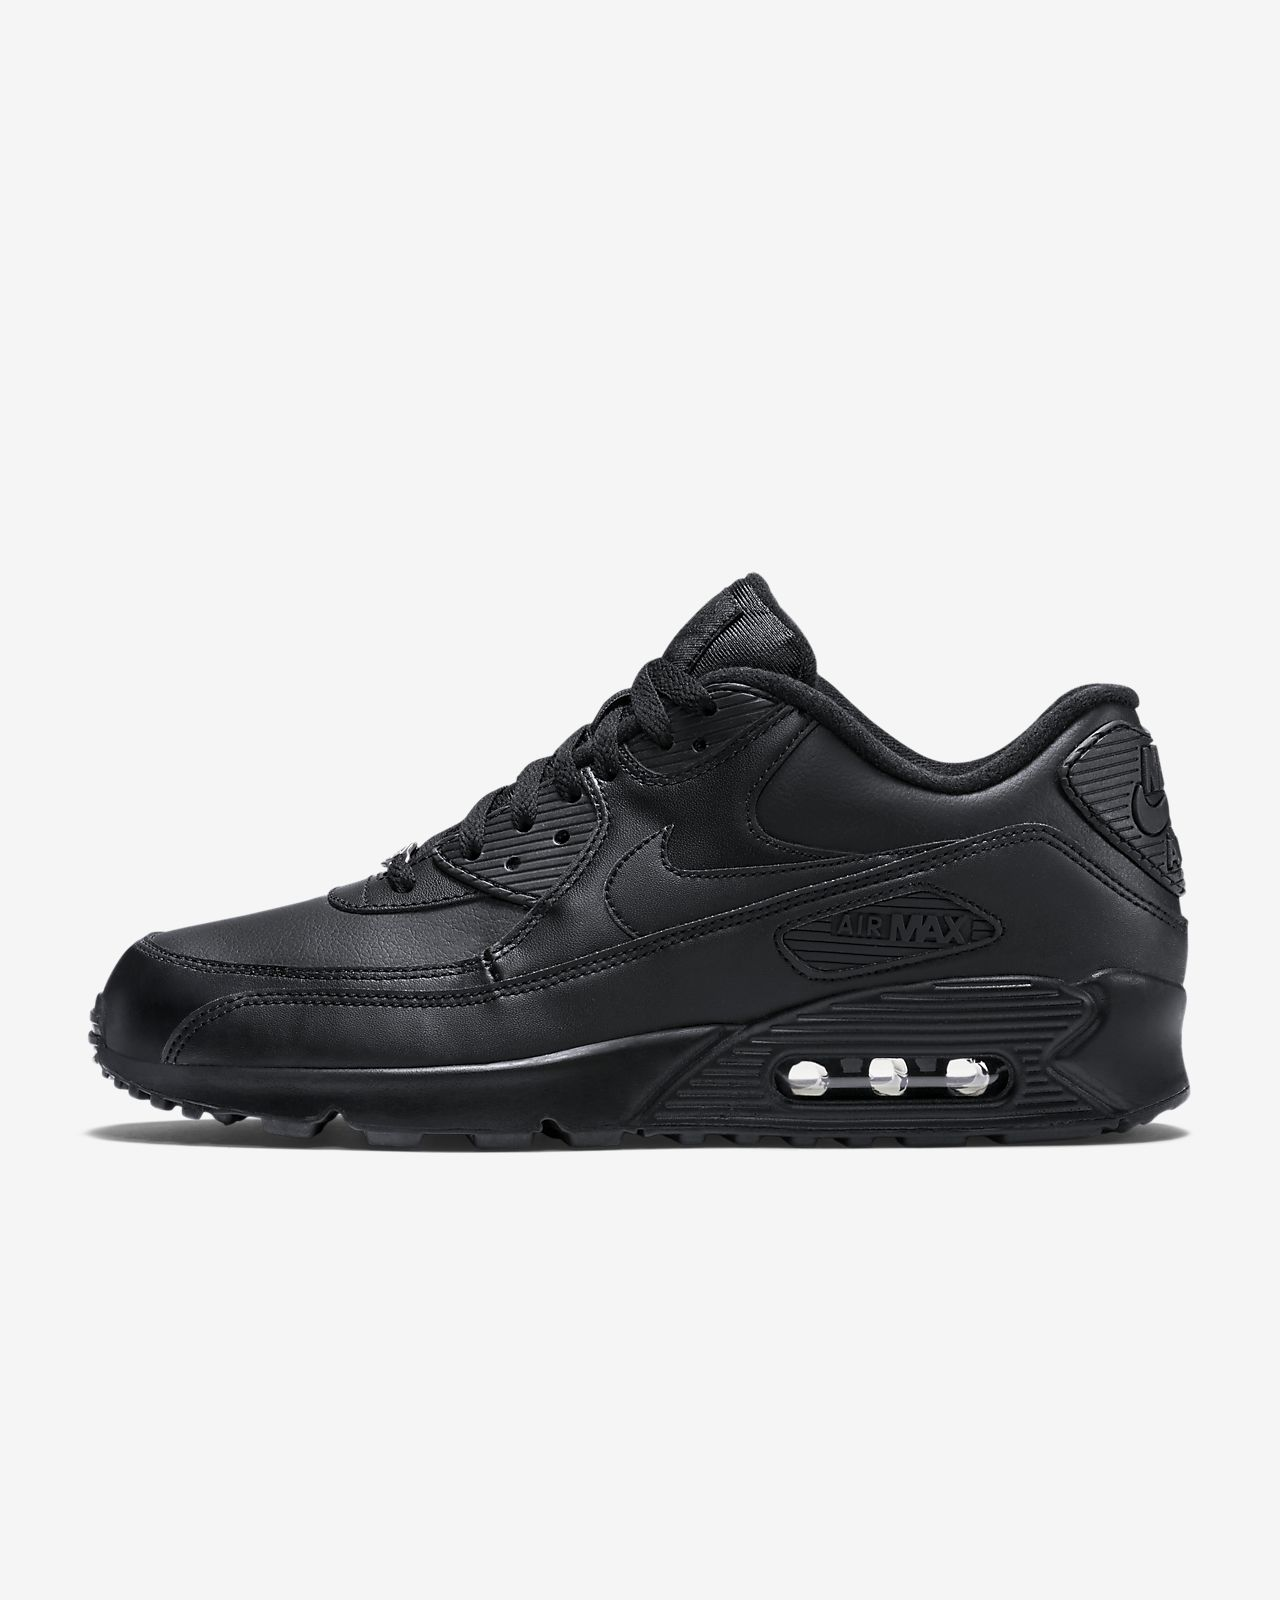 outlet store 8d32c 91fed ... Nike Air Max 90 Leather Herrenschuh